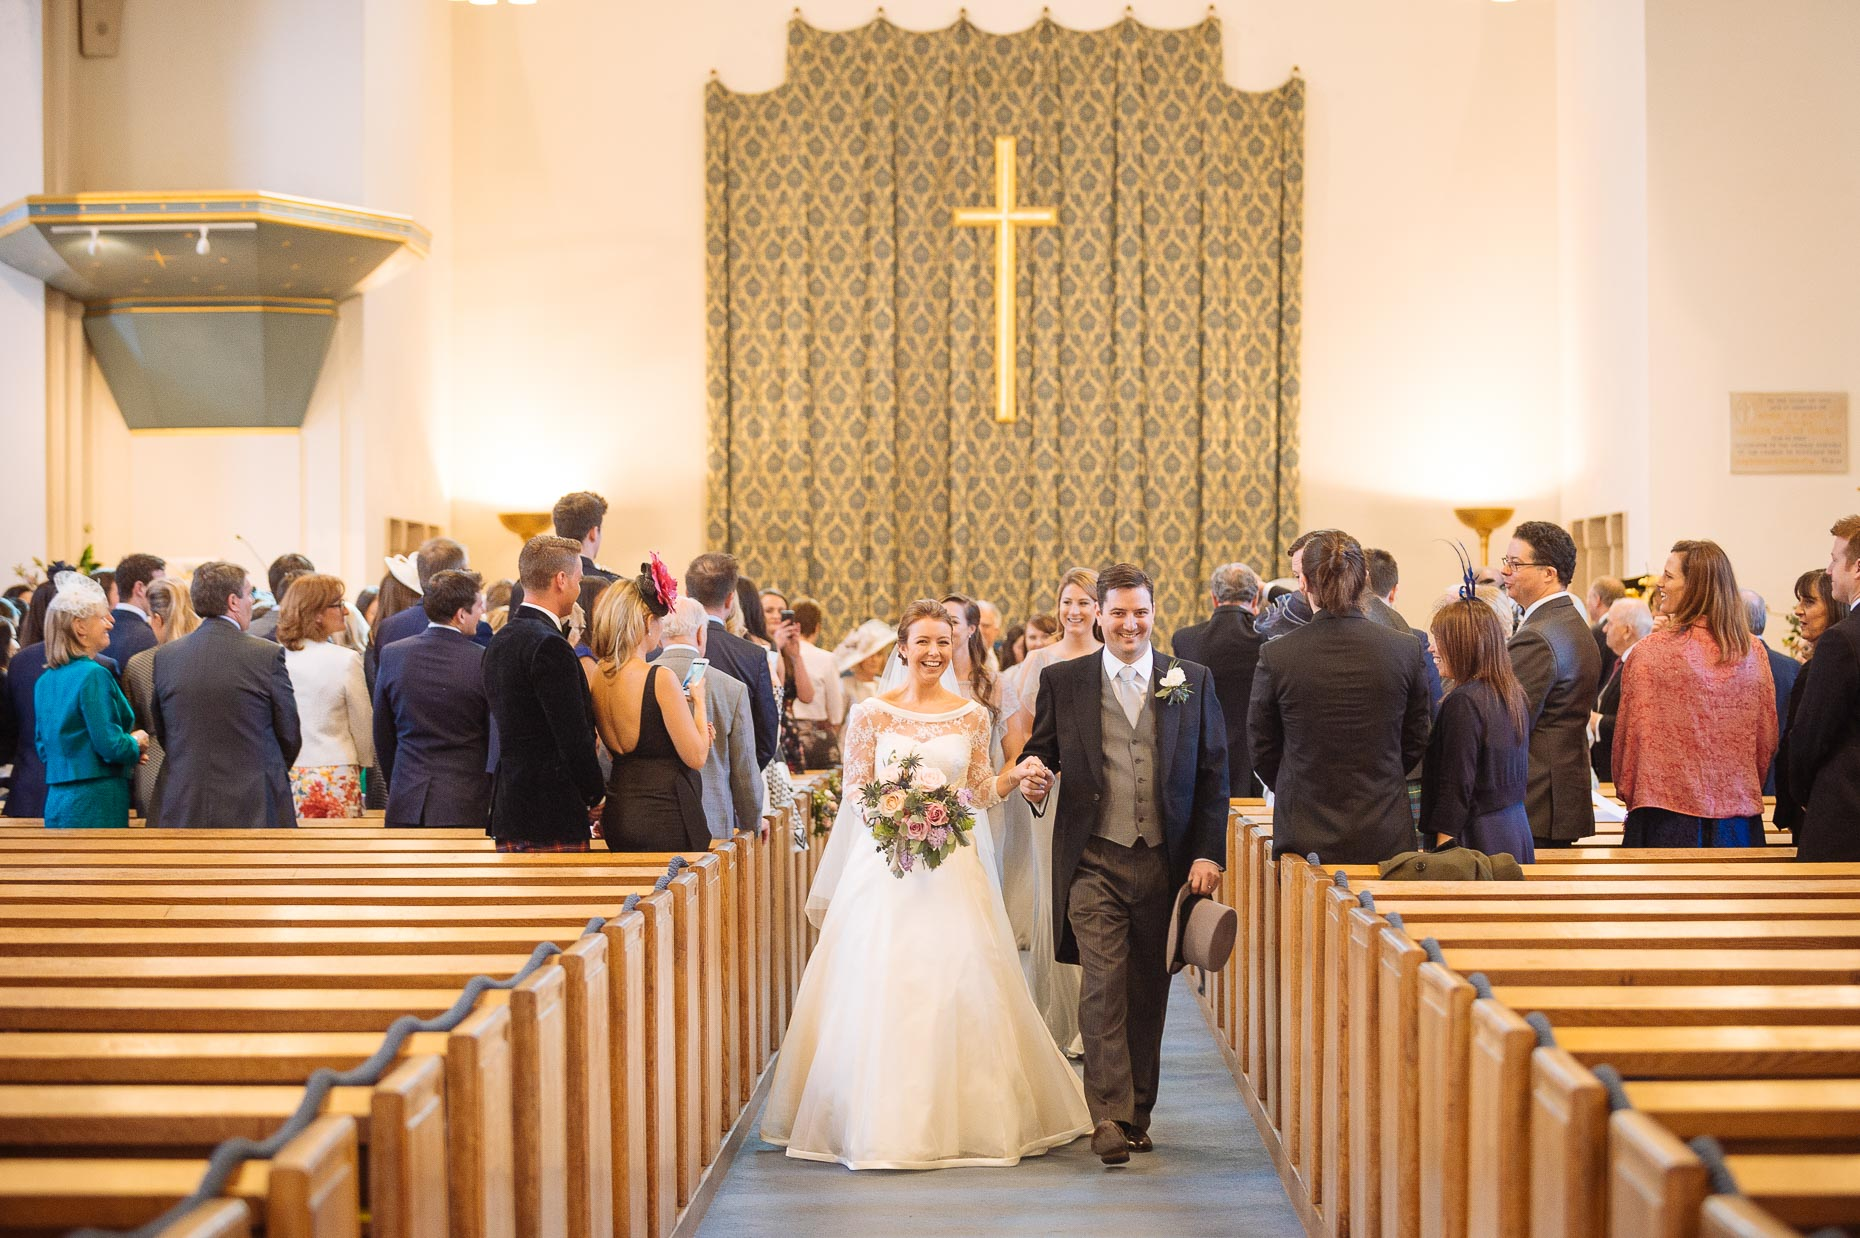 couple-down-the-aisle-st-columba-church-wedding-pictures-12